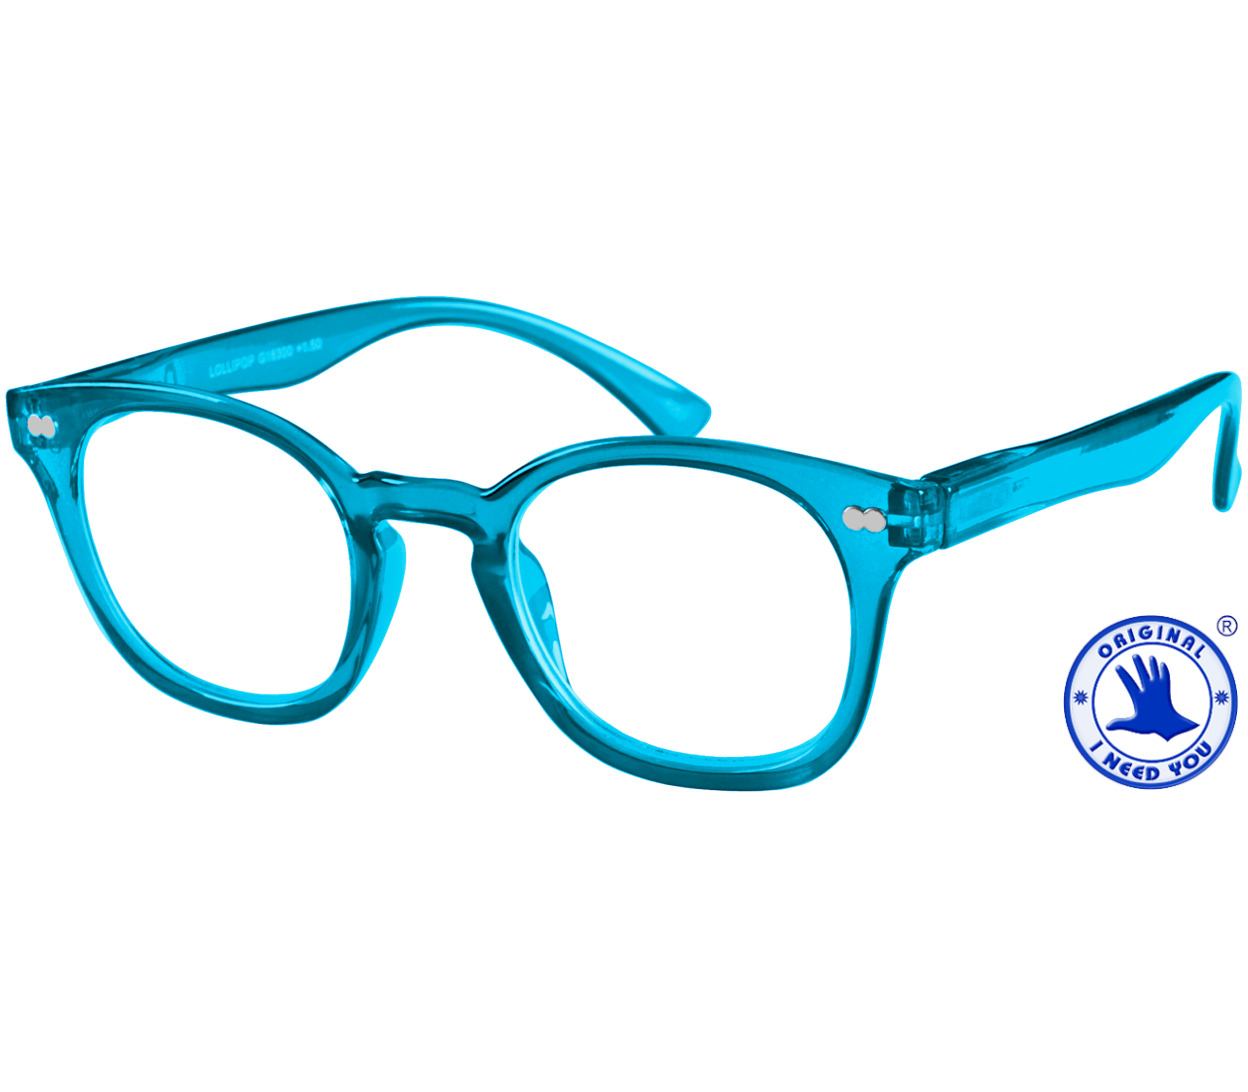 Main Image (Angle) - Lollipop (Blue) Retro Reading Glasses